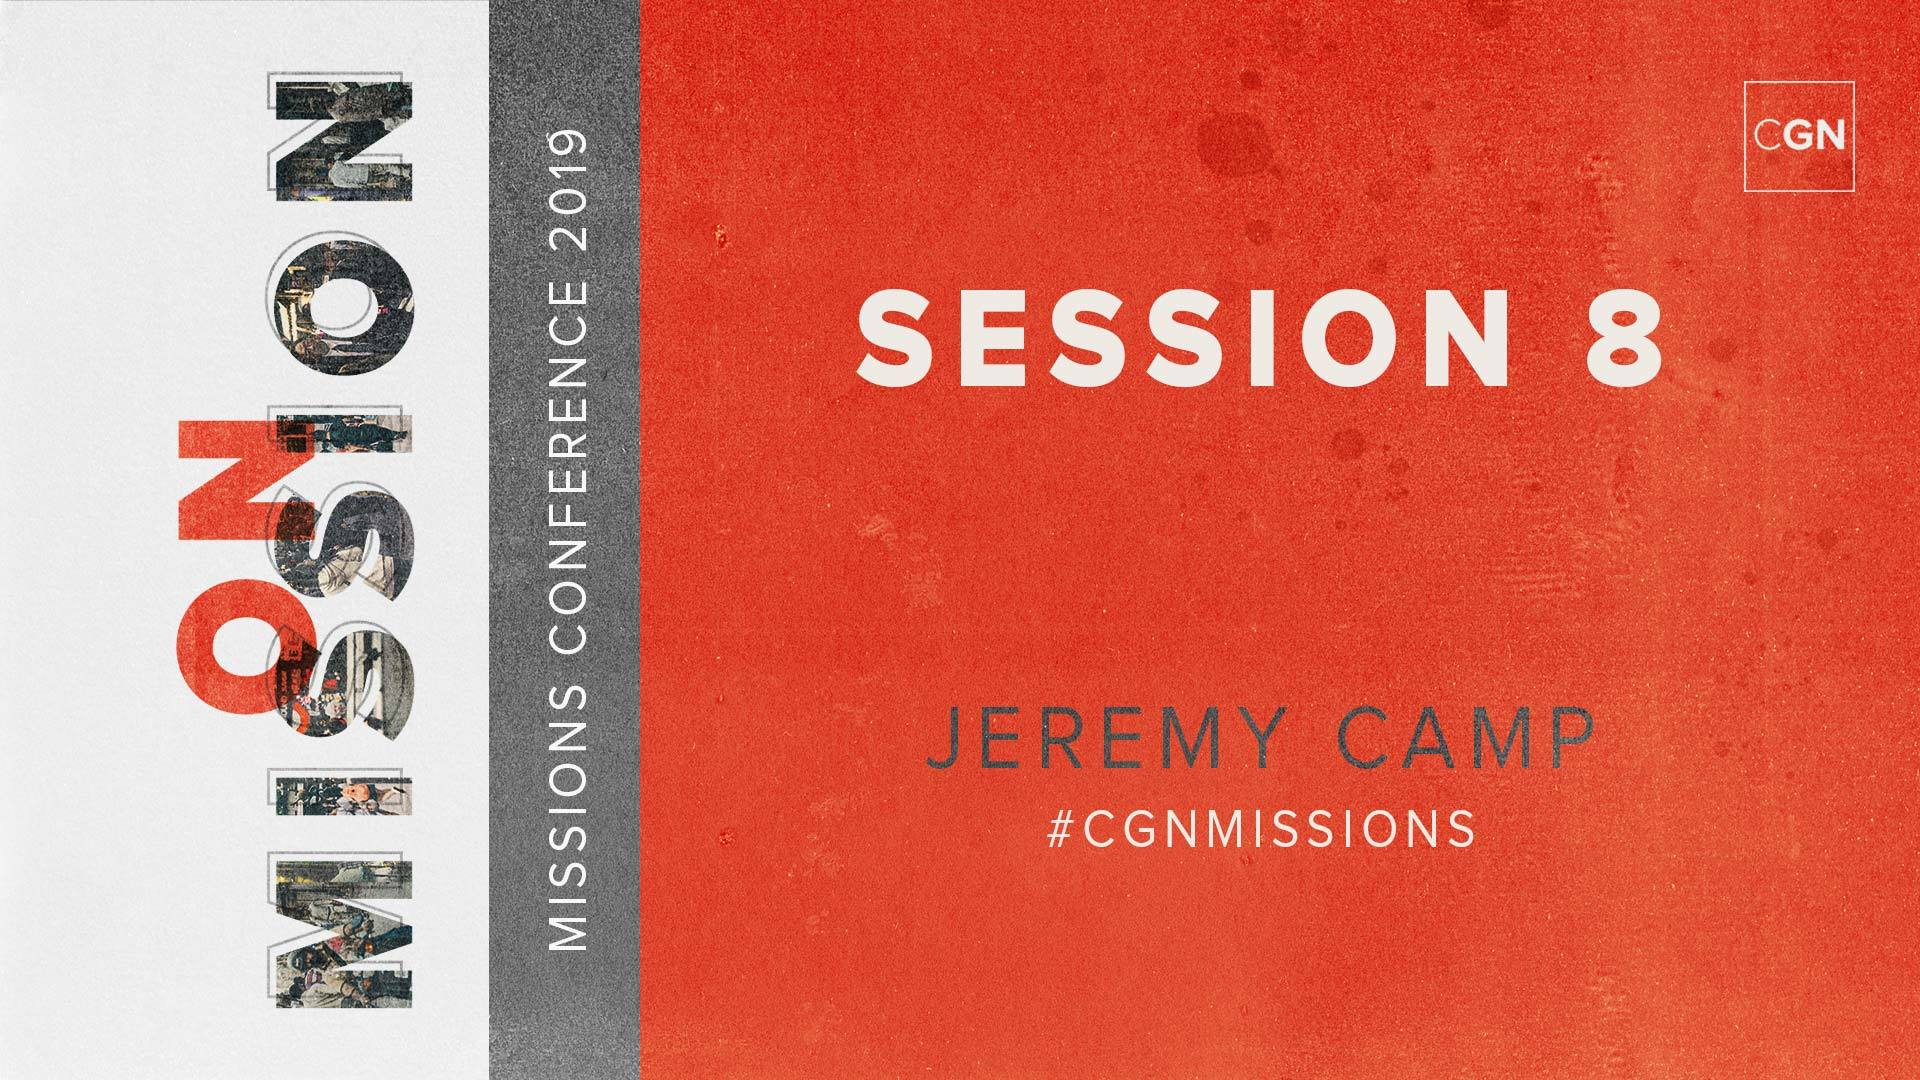 Session #8 - Jeremy Camp